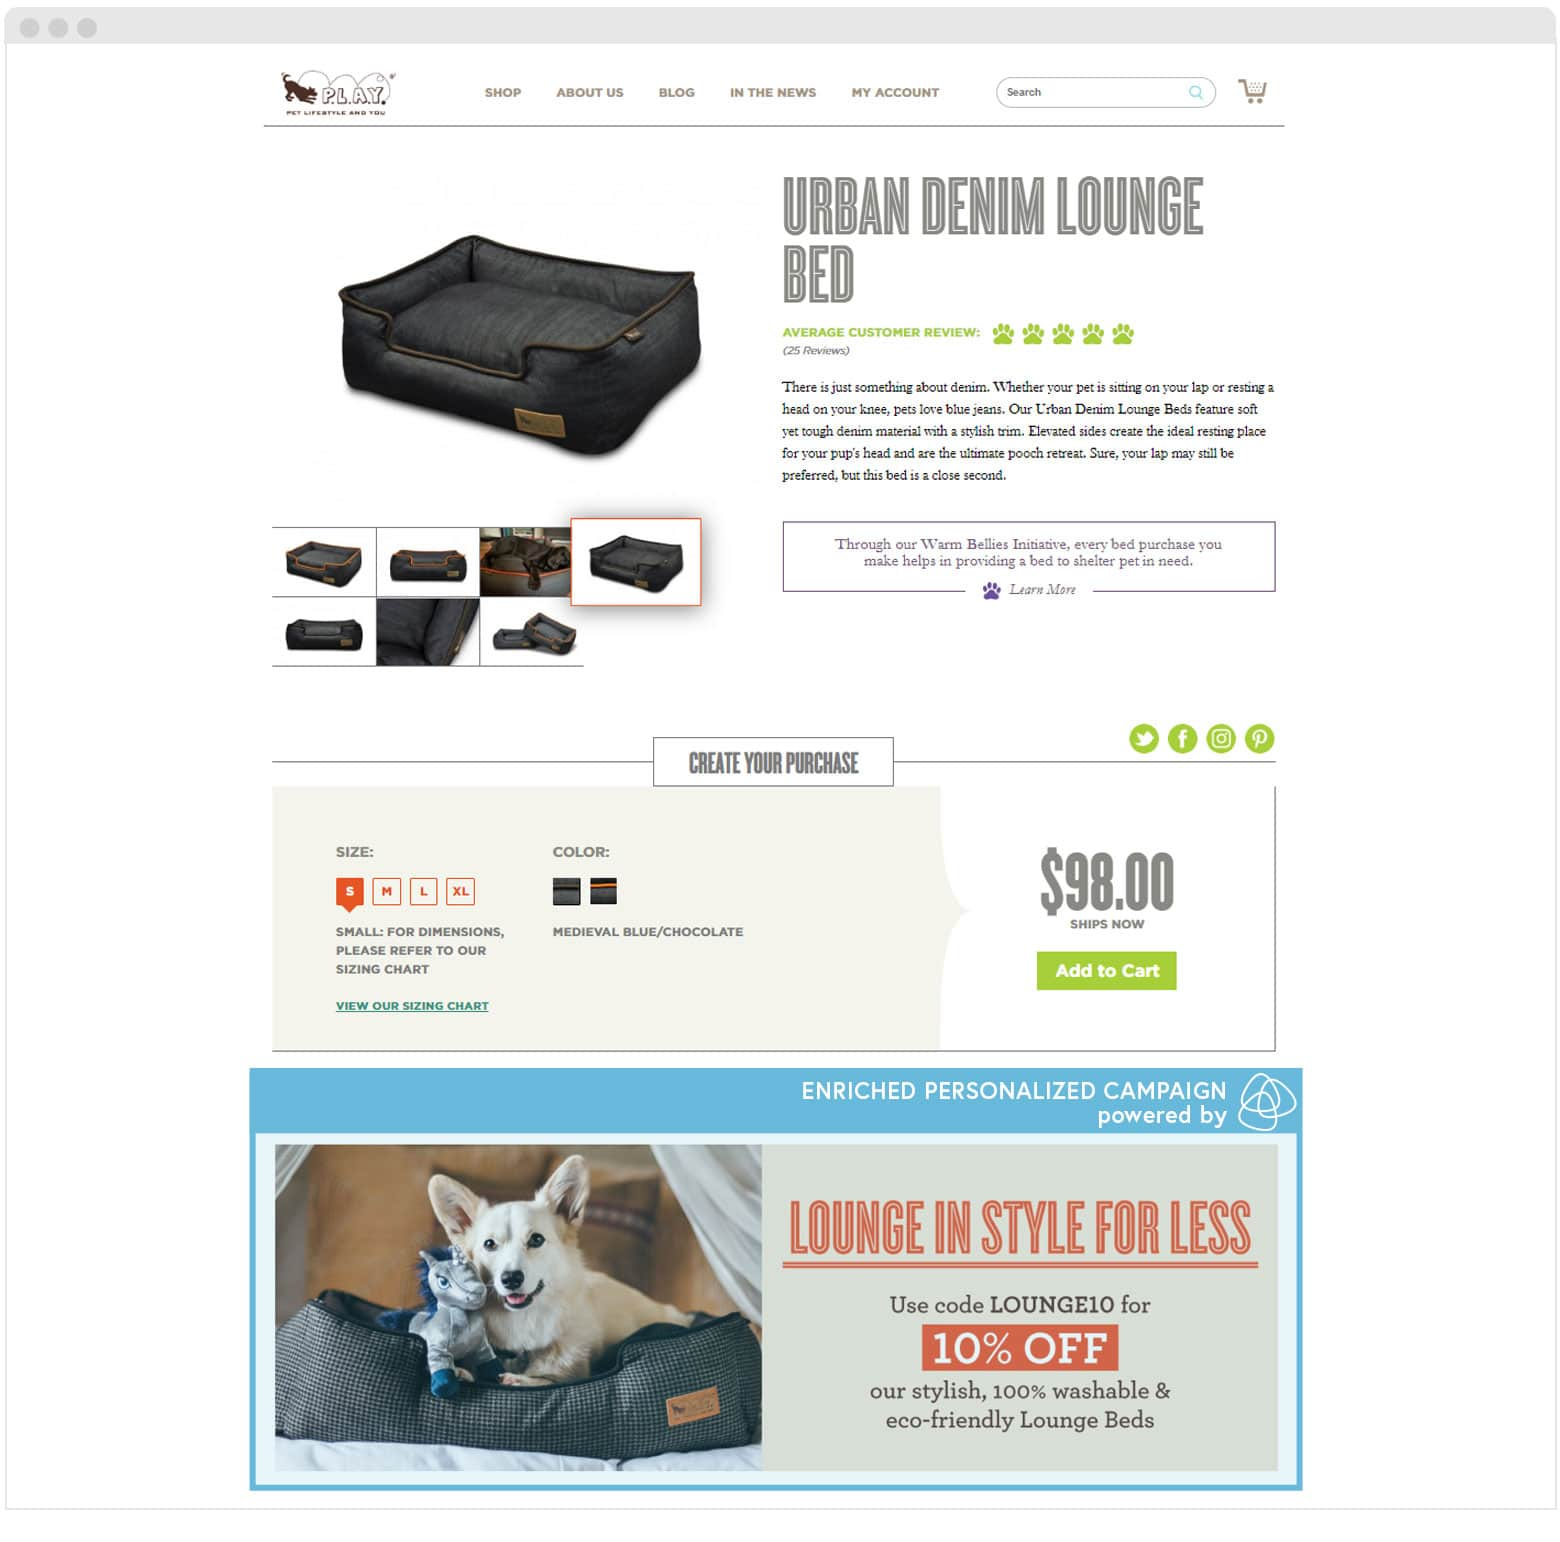 PetPlay A/B Content Campaigns